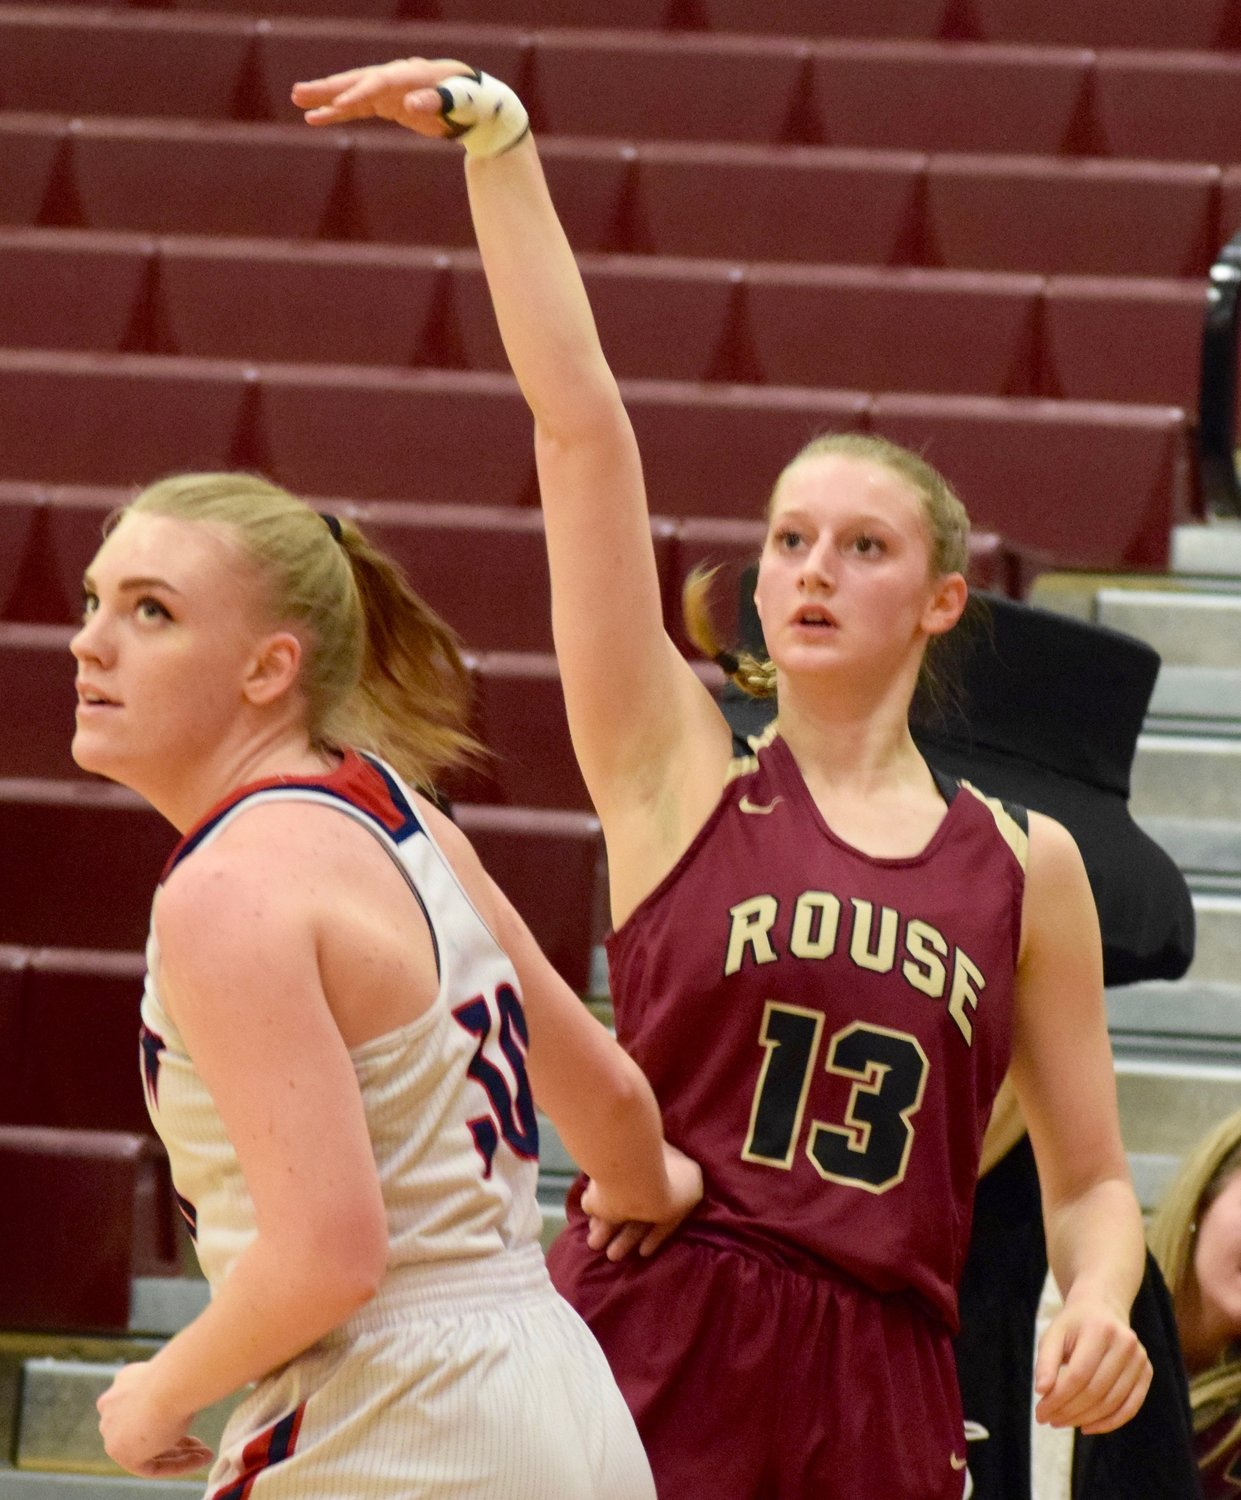 Rouse senior Chole Austin was named the District 17-5A first team. The Lady Raiders made it to the first round of the playoffs.